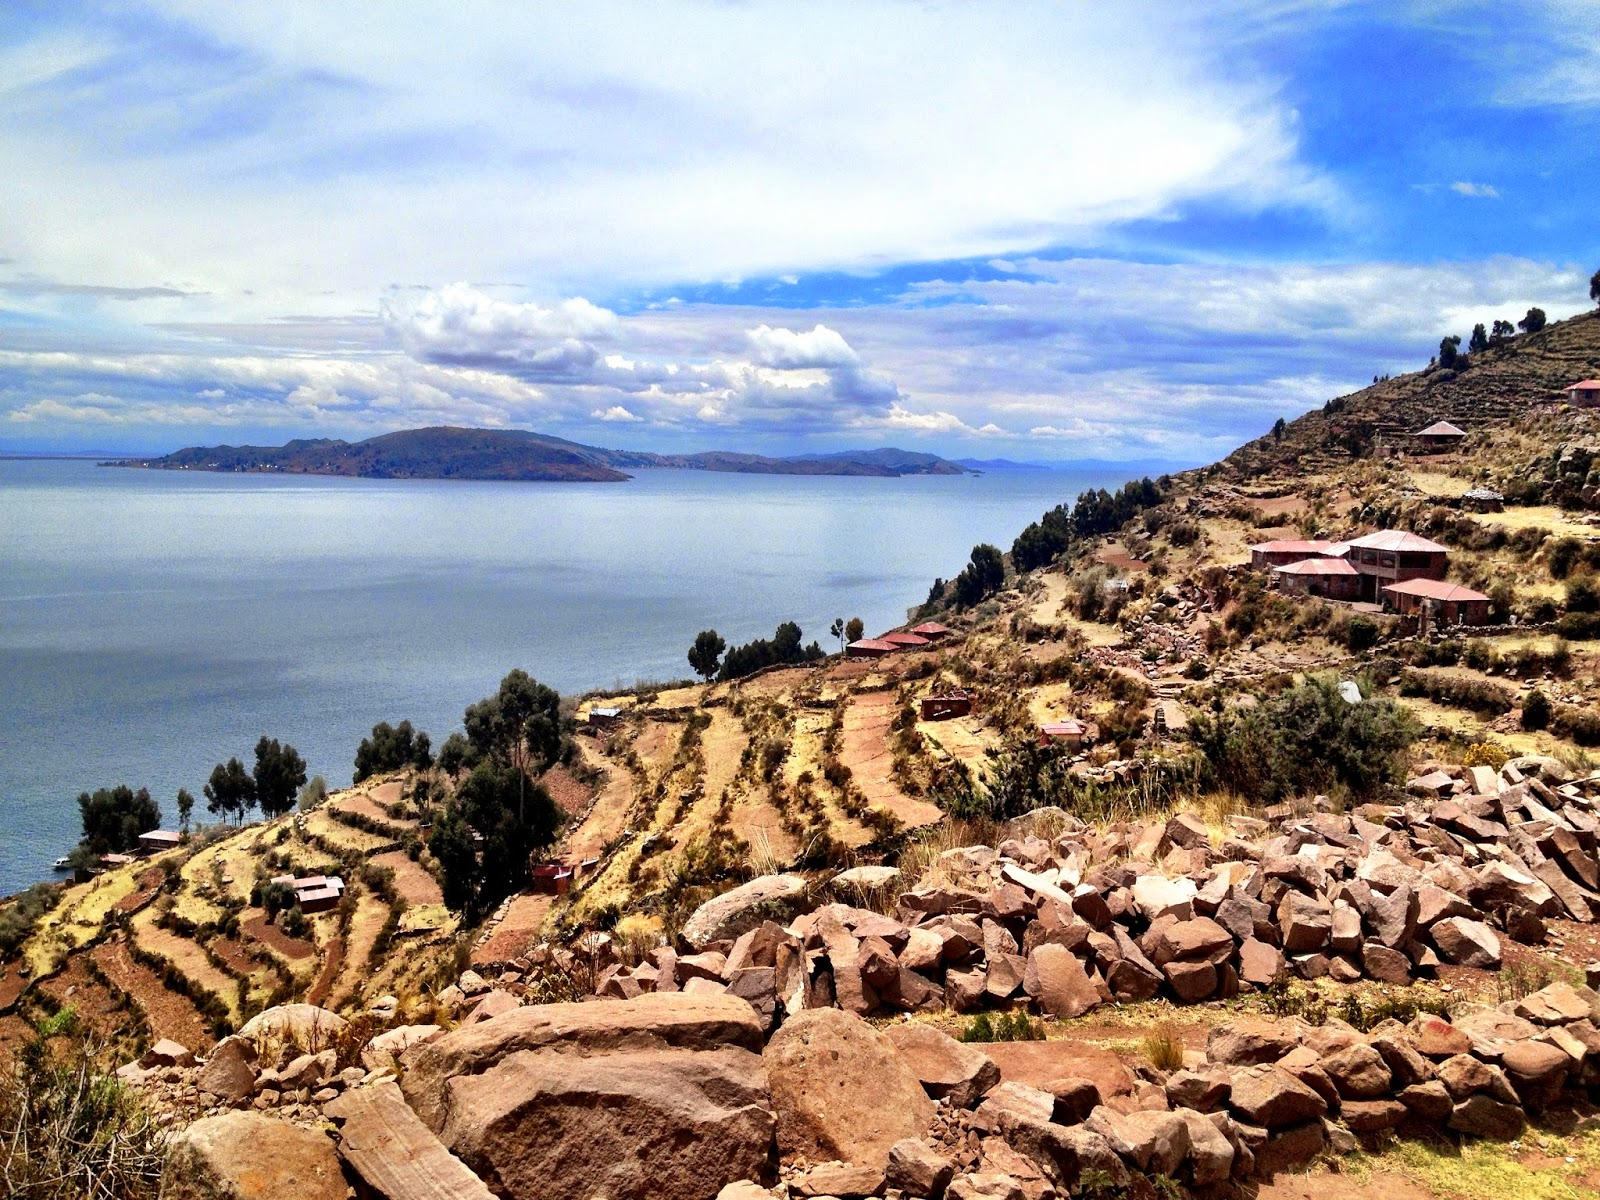 Farming terraces all around - Taquile Island